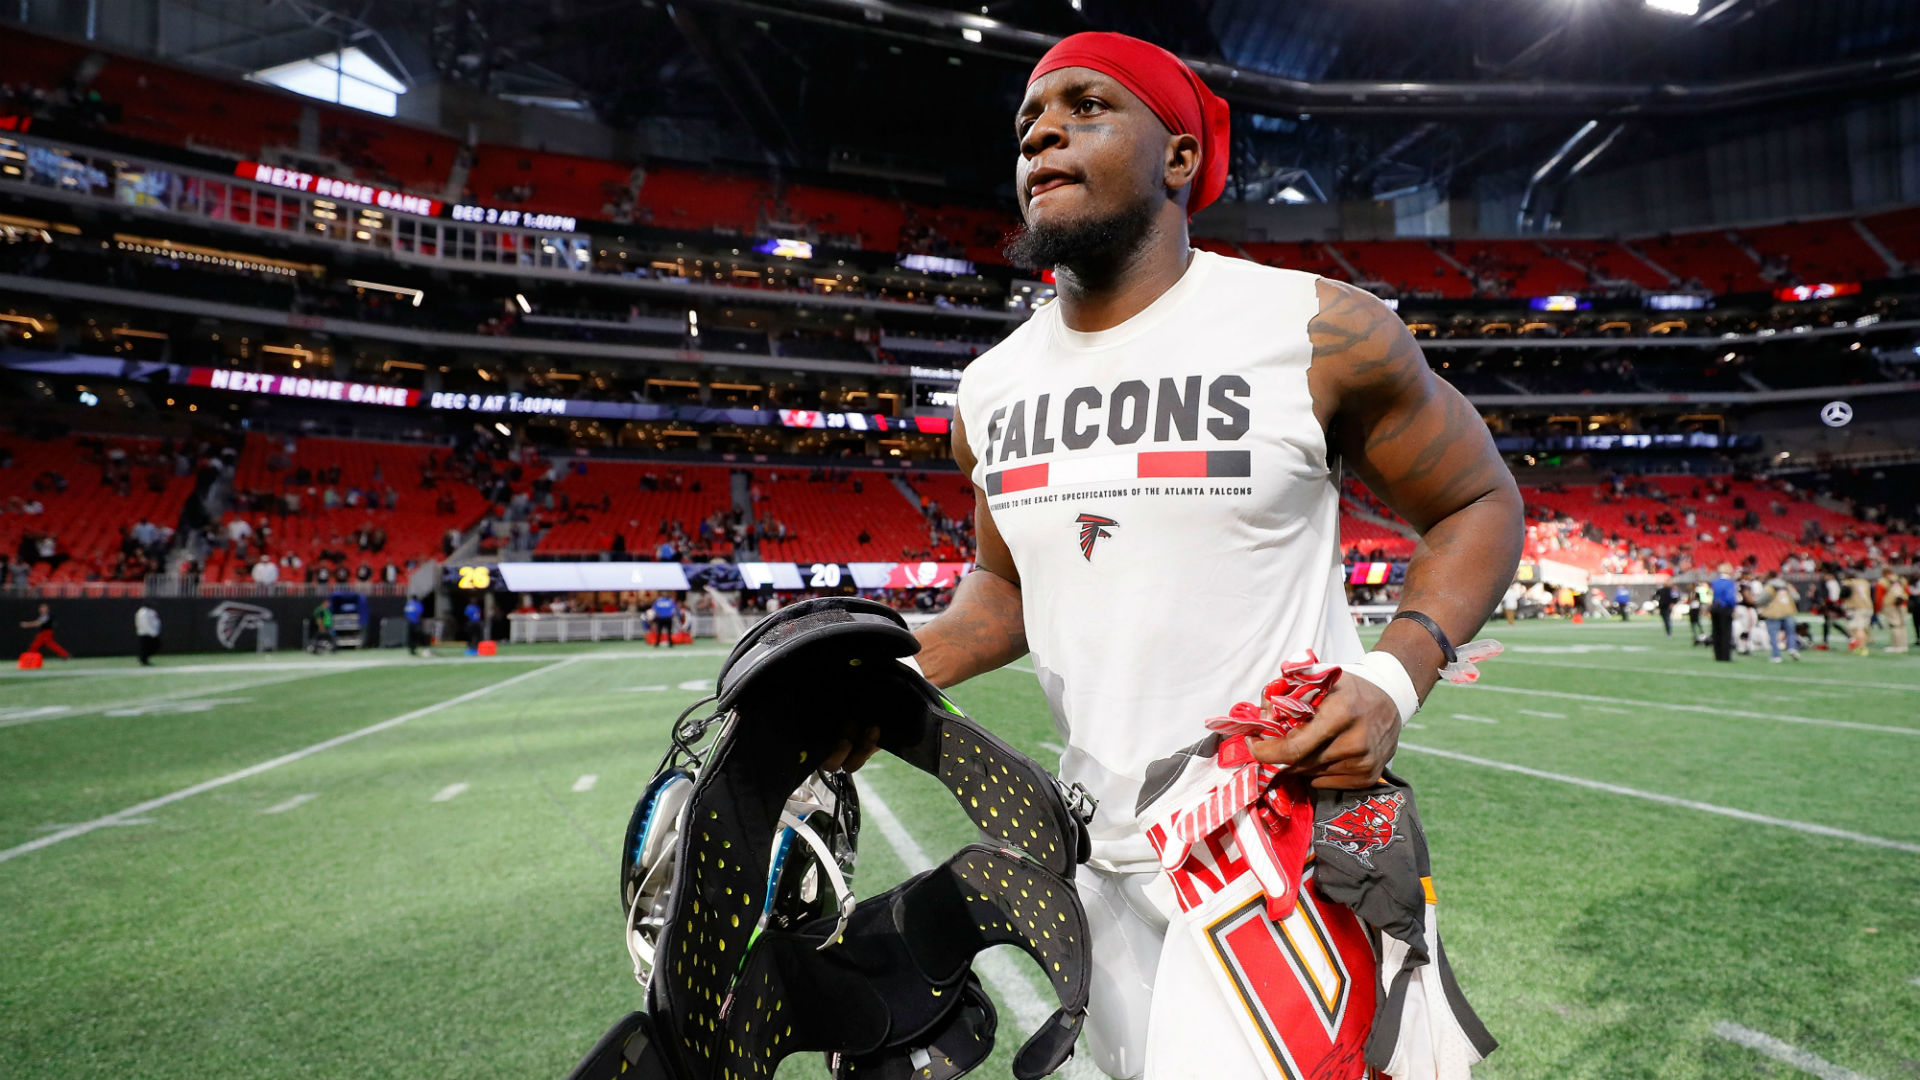 Mohamed Sanu Trade: Move to Patriots affects fantasy value of Calvin Ridley, Phillip Dorsett, Justin Hardy